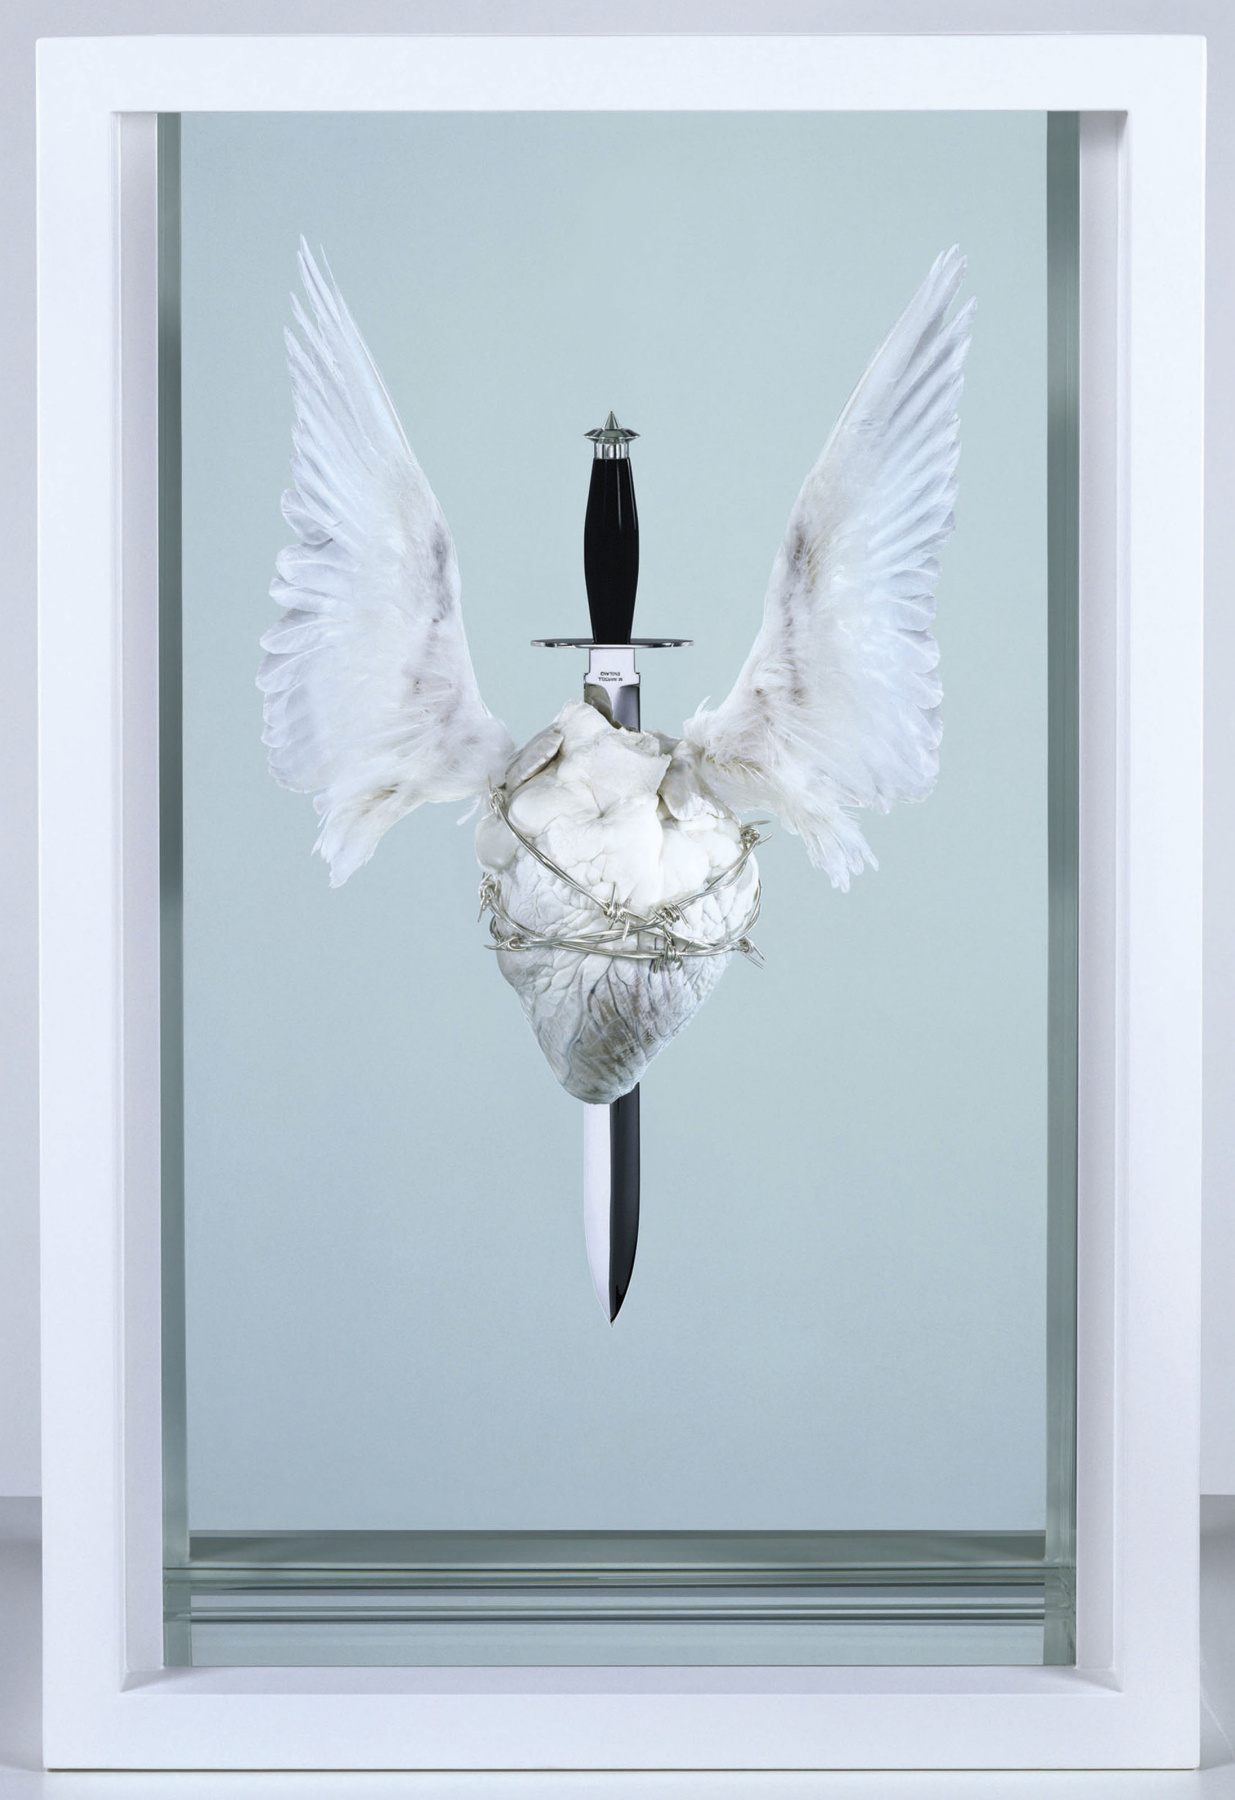 Damien Hirst. The Immaculate Heart